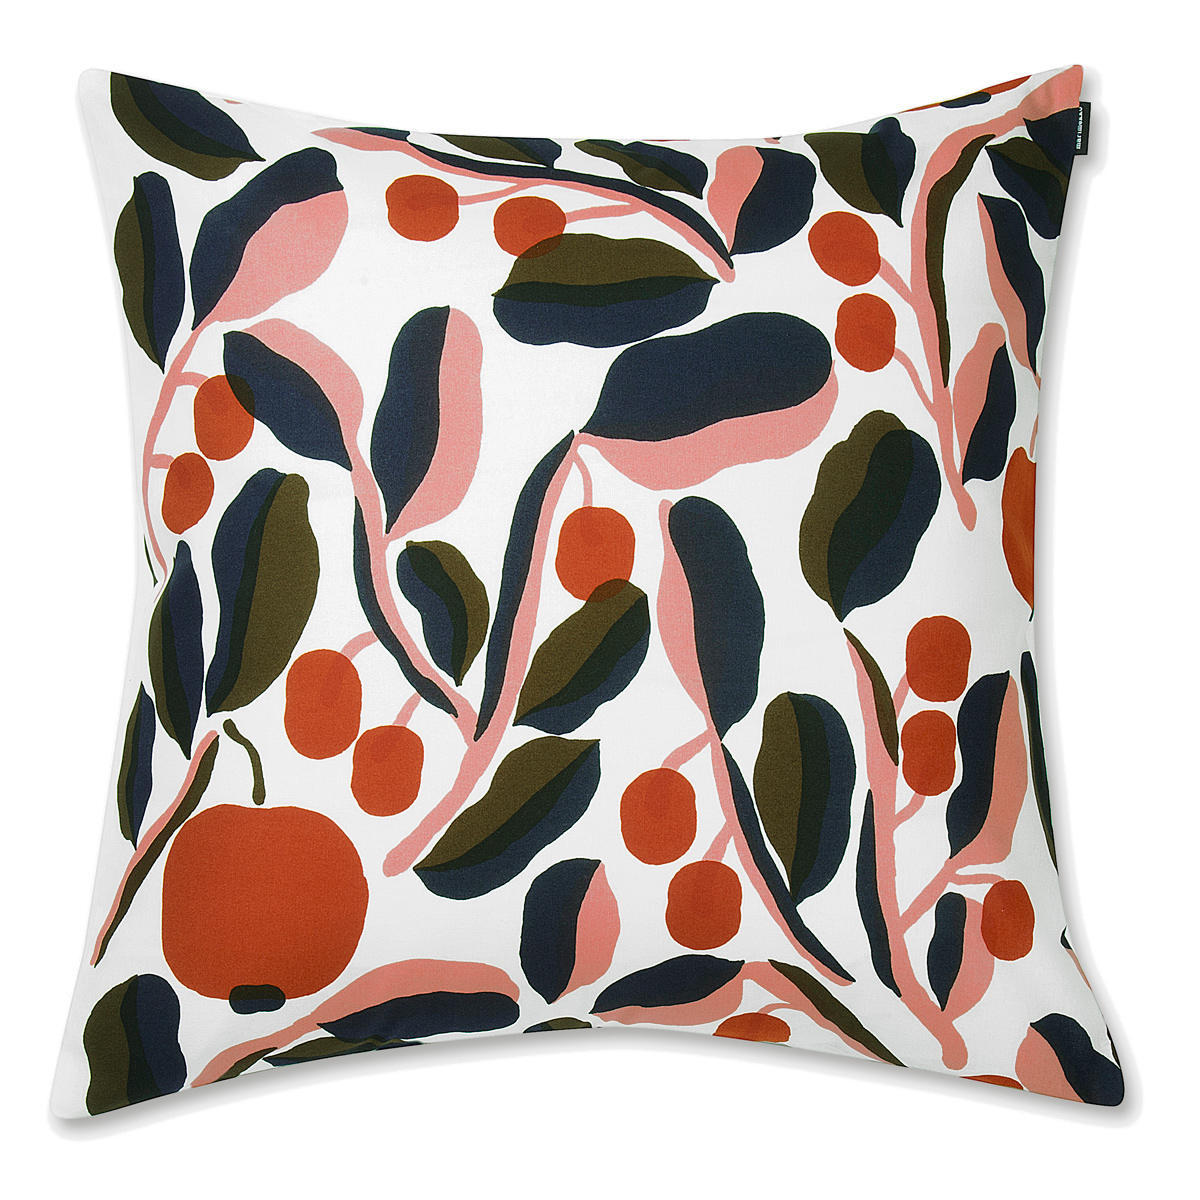 Marimekko Jaspi White Orange Large Throw Pillow